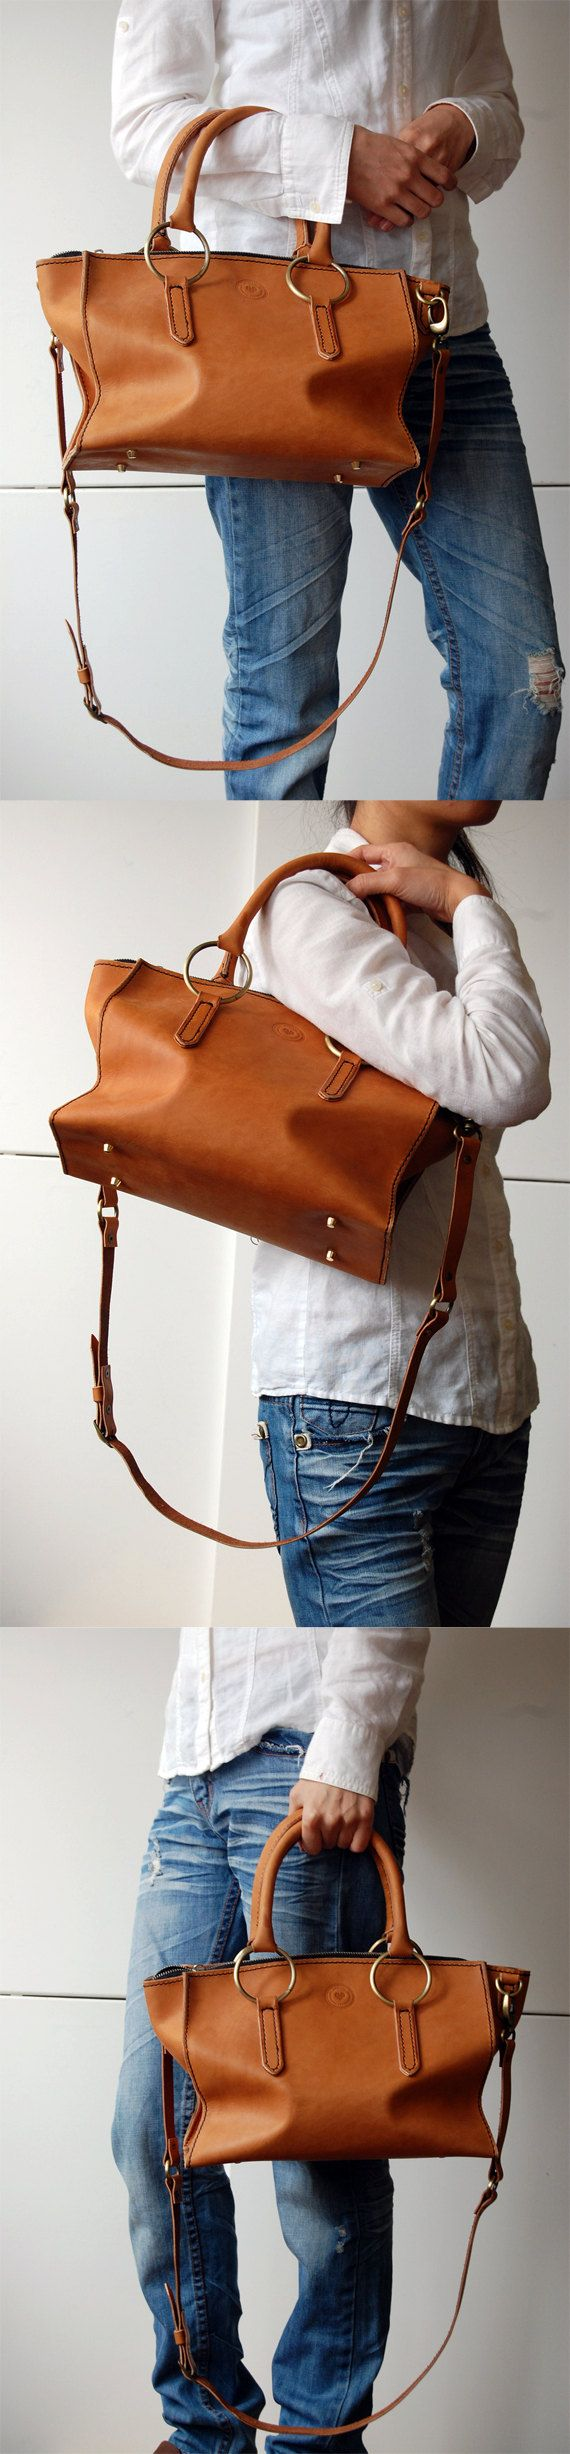 Handstitched Tan Leather Satchel No 8 by OrigamiLeather on Etsy, $195.00